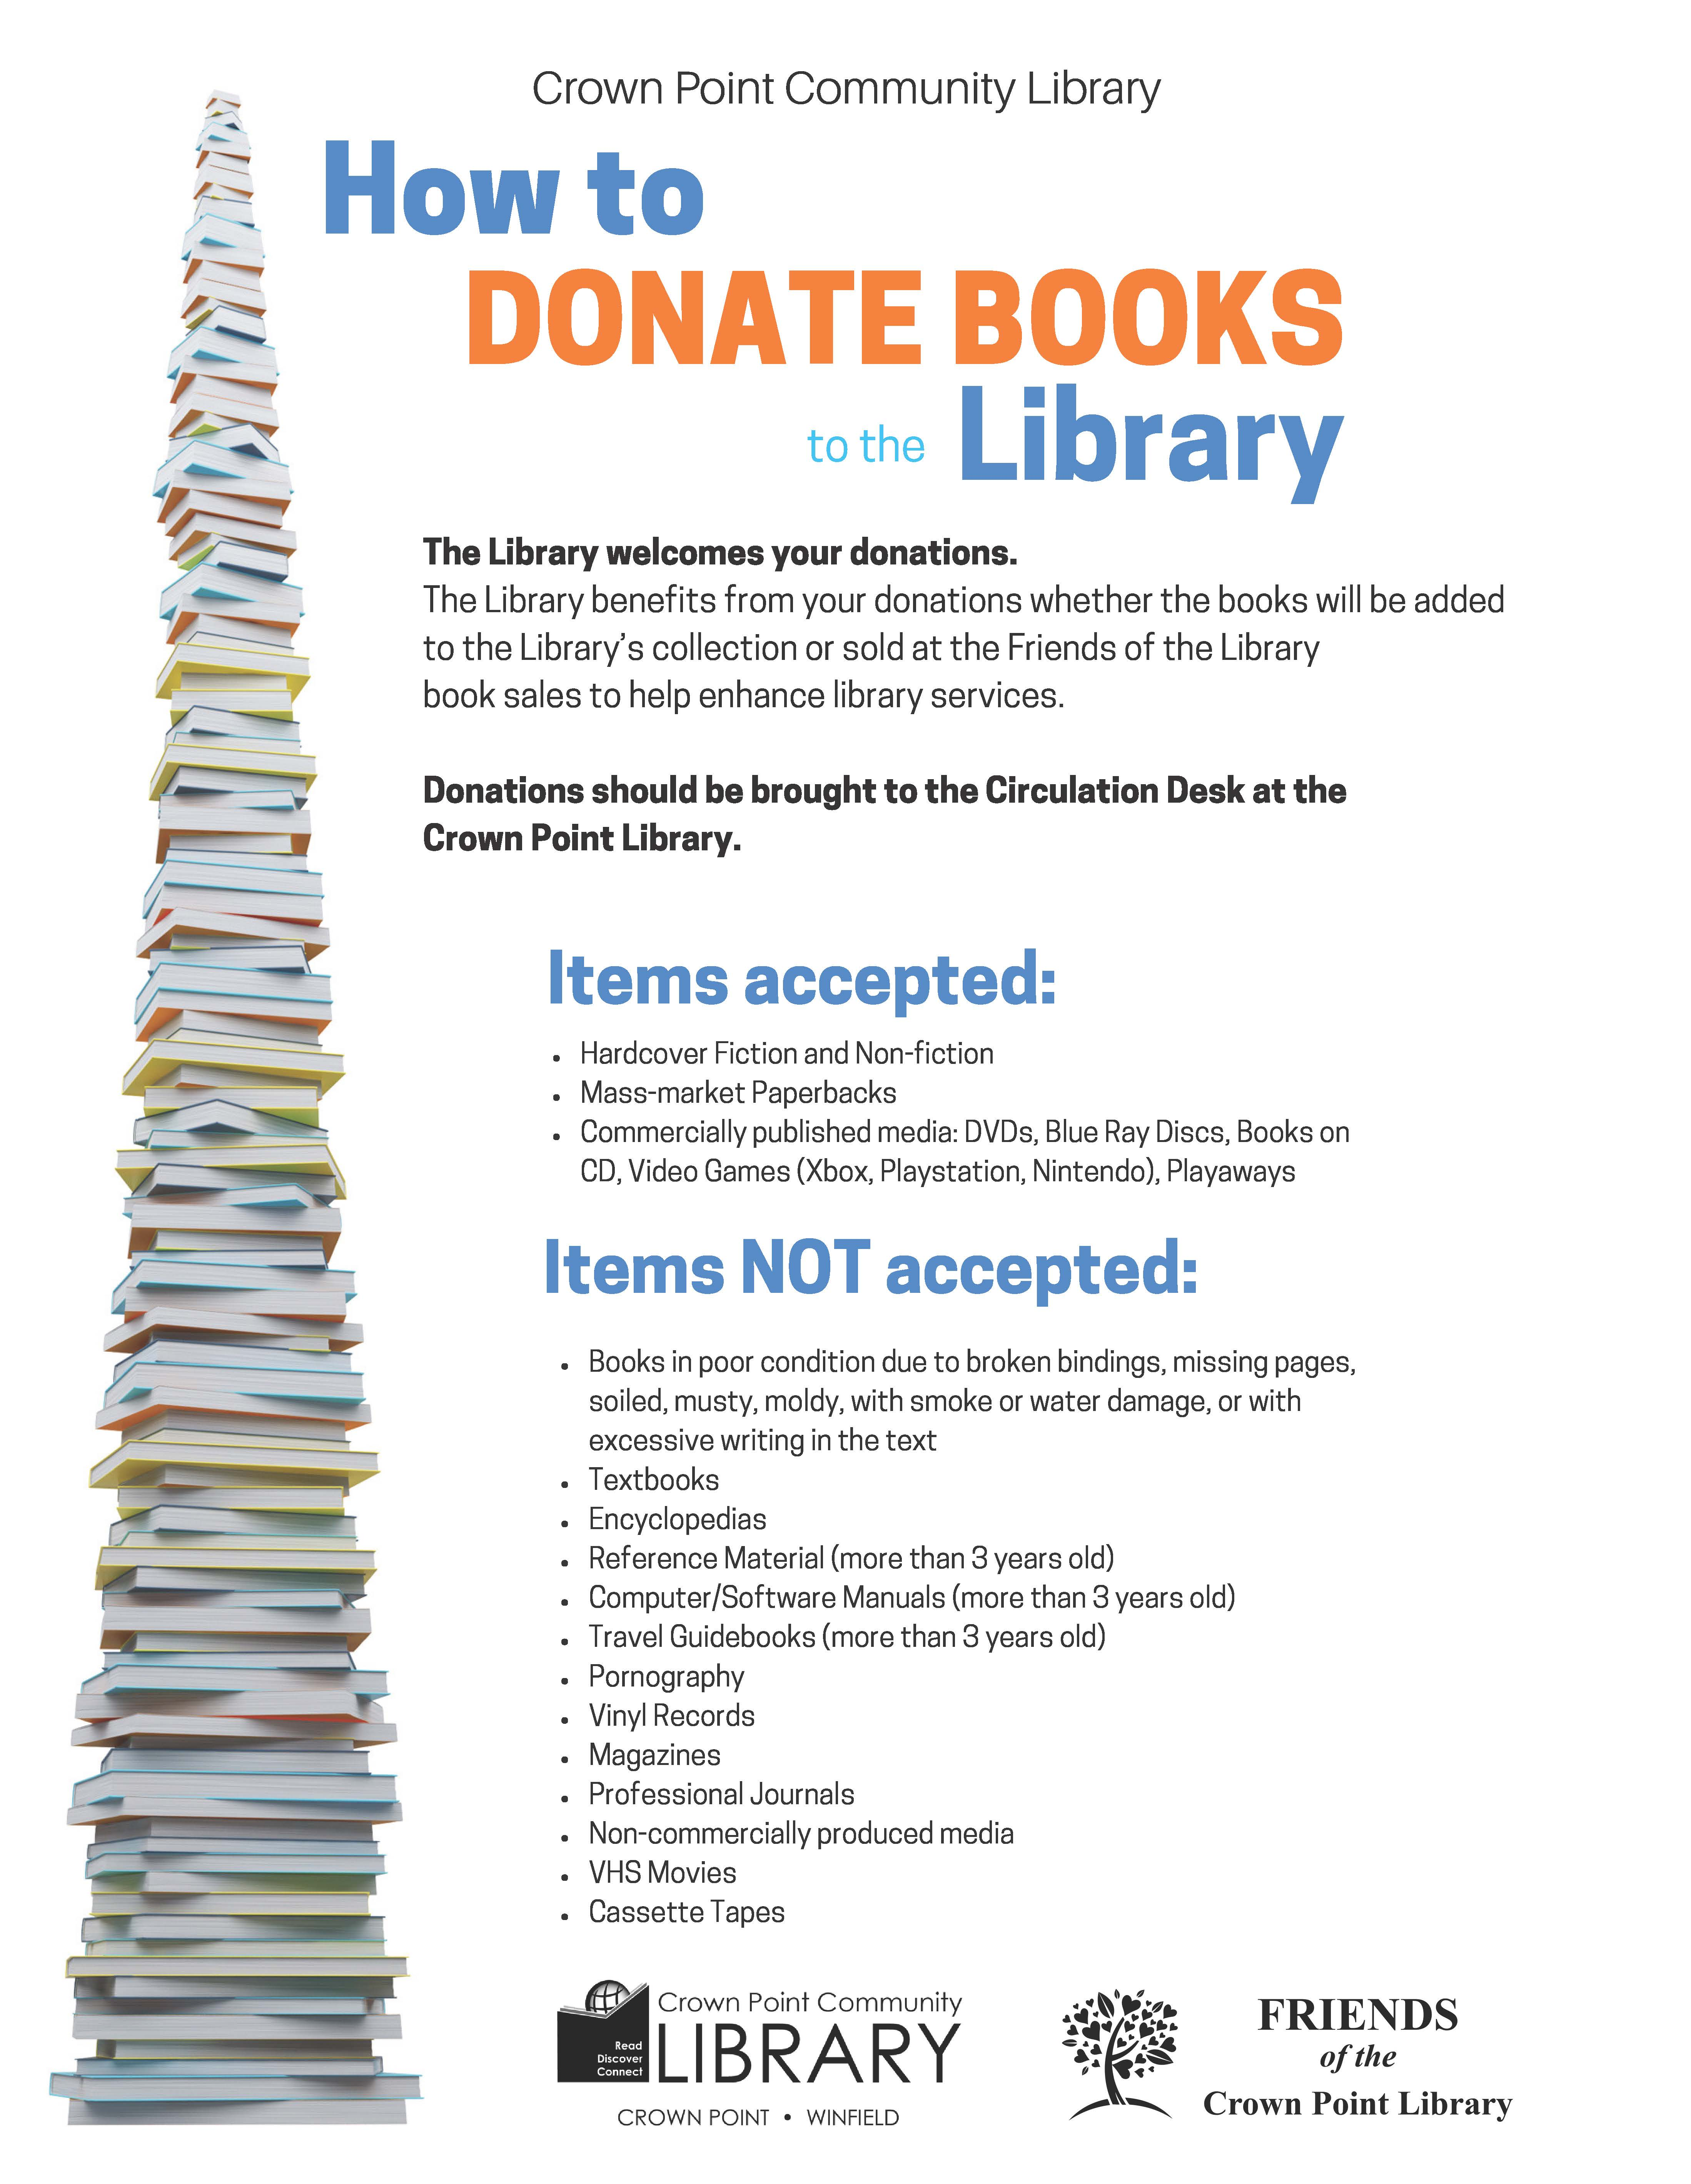 Crown Point Community Library - How To Donate Books To The